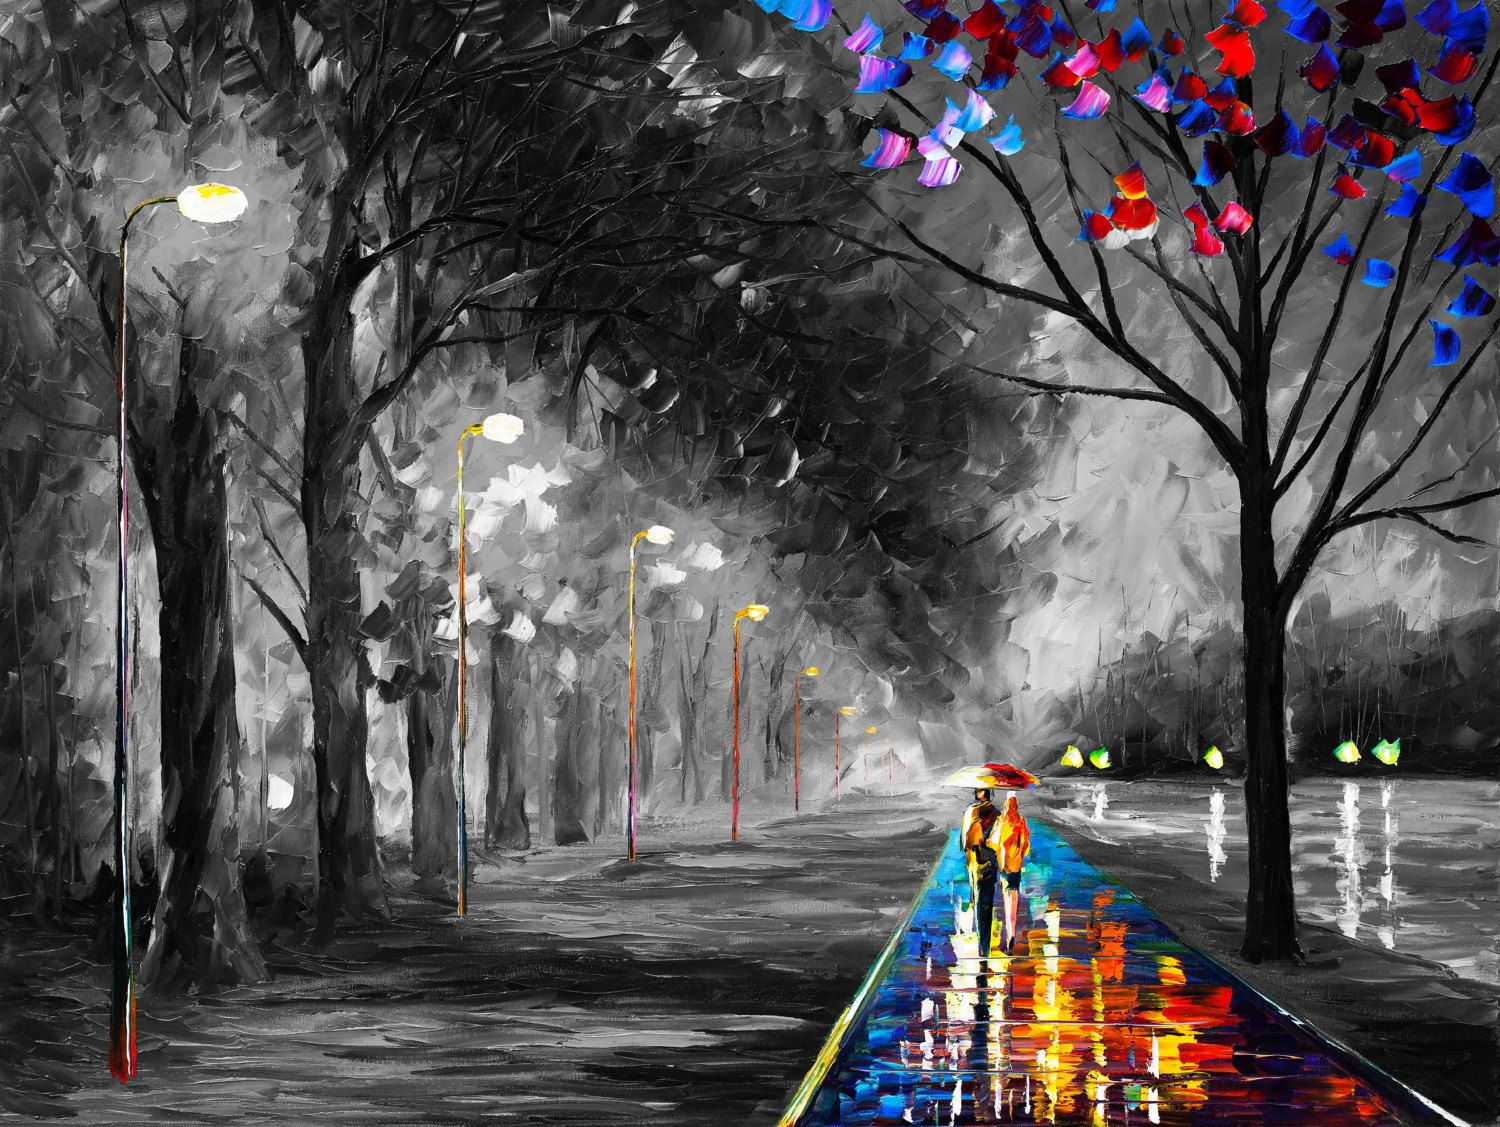 GICLEE ON CANVAS DIRECTLY FROM FAMOUS ARTIST LEONID AFREMOV Title: Alley By The Lake Size: Variable Condition: Excellent Brand new Type: Giclee on cotton canvas This giclee is made in the following process. its a high quality print on cotton canvas. Then the artist takes a brush and adds strokes on top to give the print depth and texture just like the original painting Here you are buying directly from the artist. Signed by the artist, Certificate of Authenticity with the value provided. ...